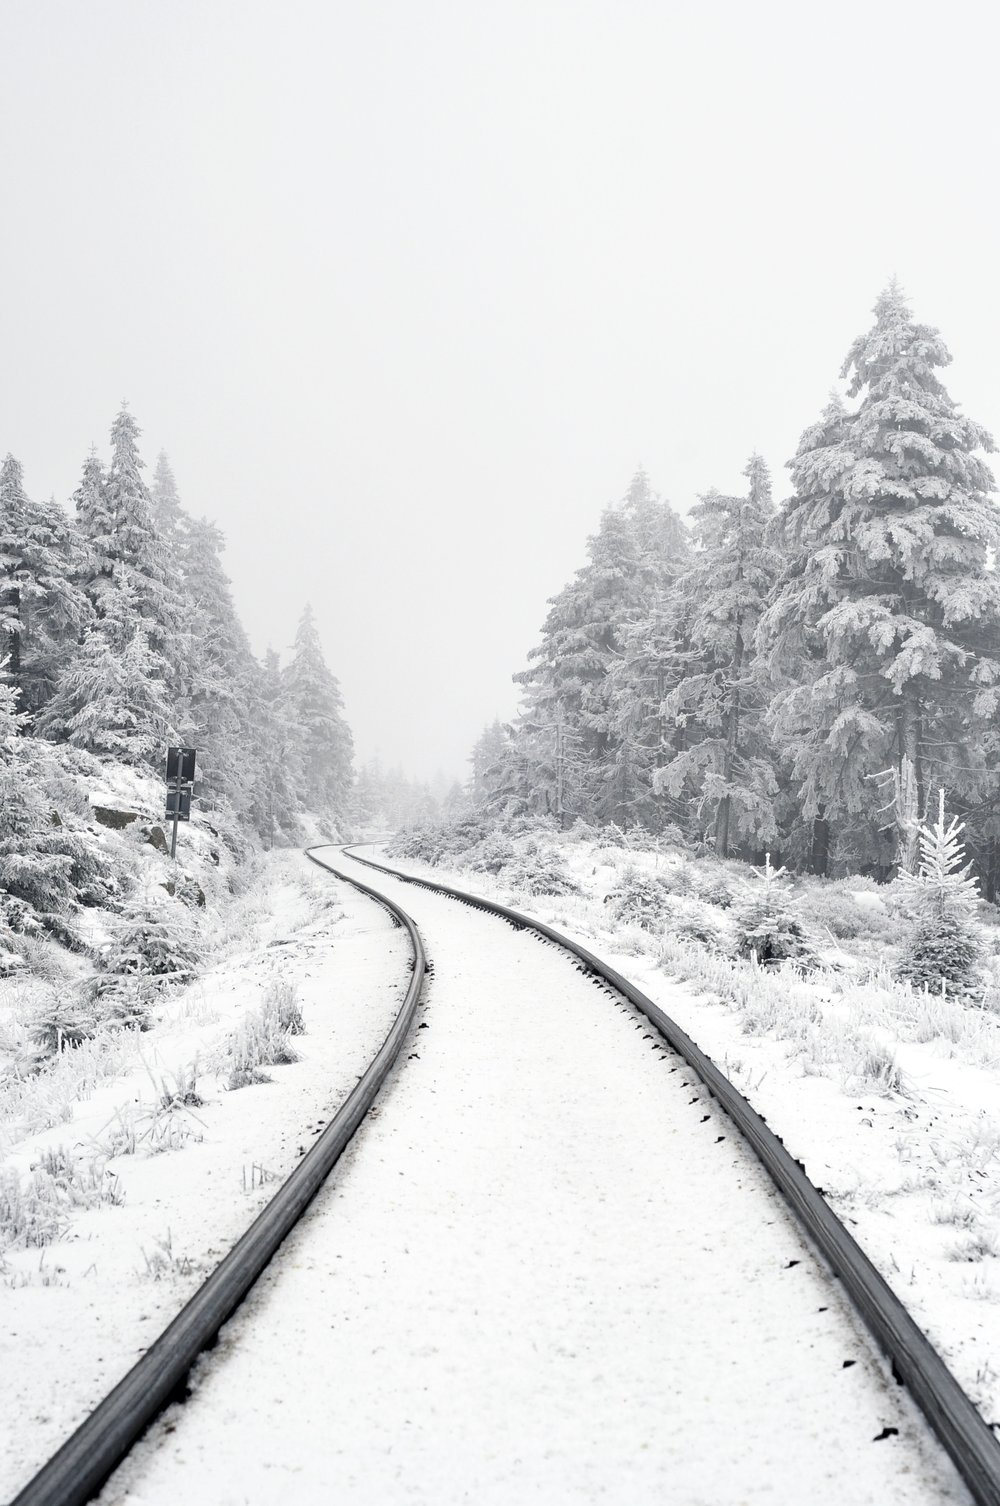 There's a winter wonderland out there, so why not go and explore it?